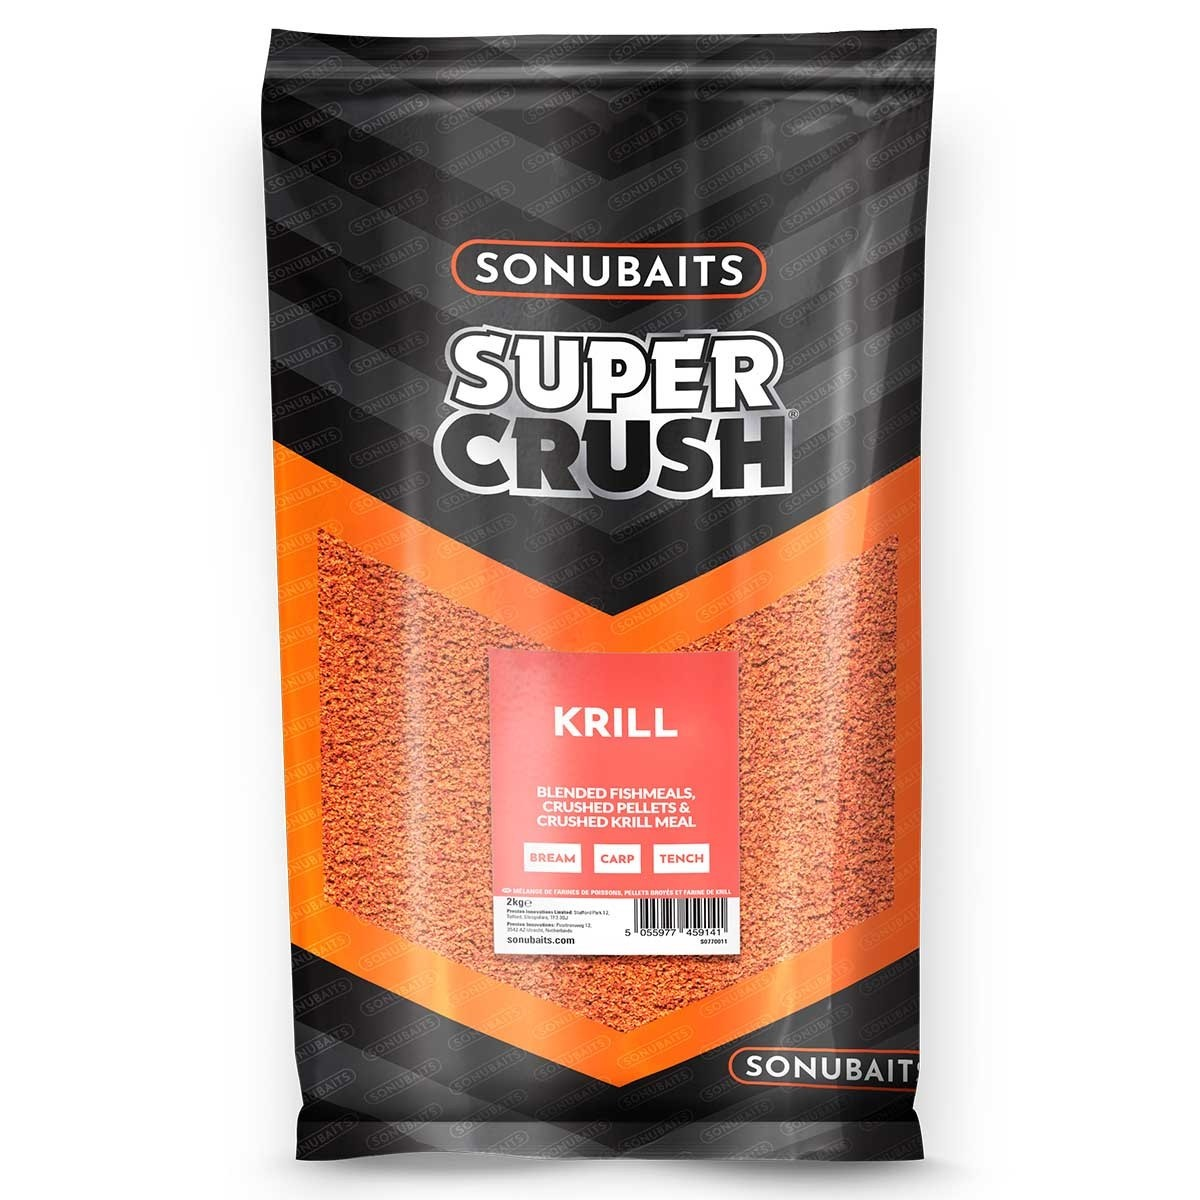 Sonubait Krill Supercrush Groundbait 2kg